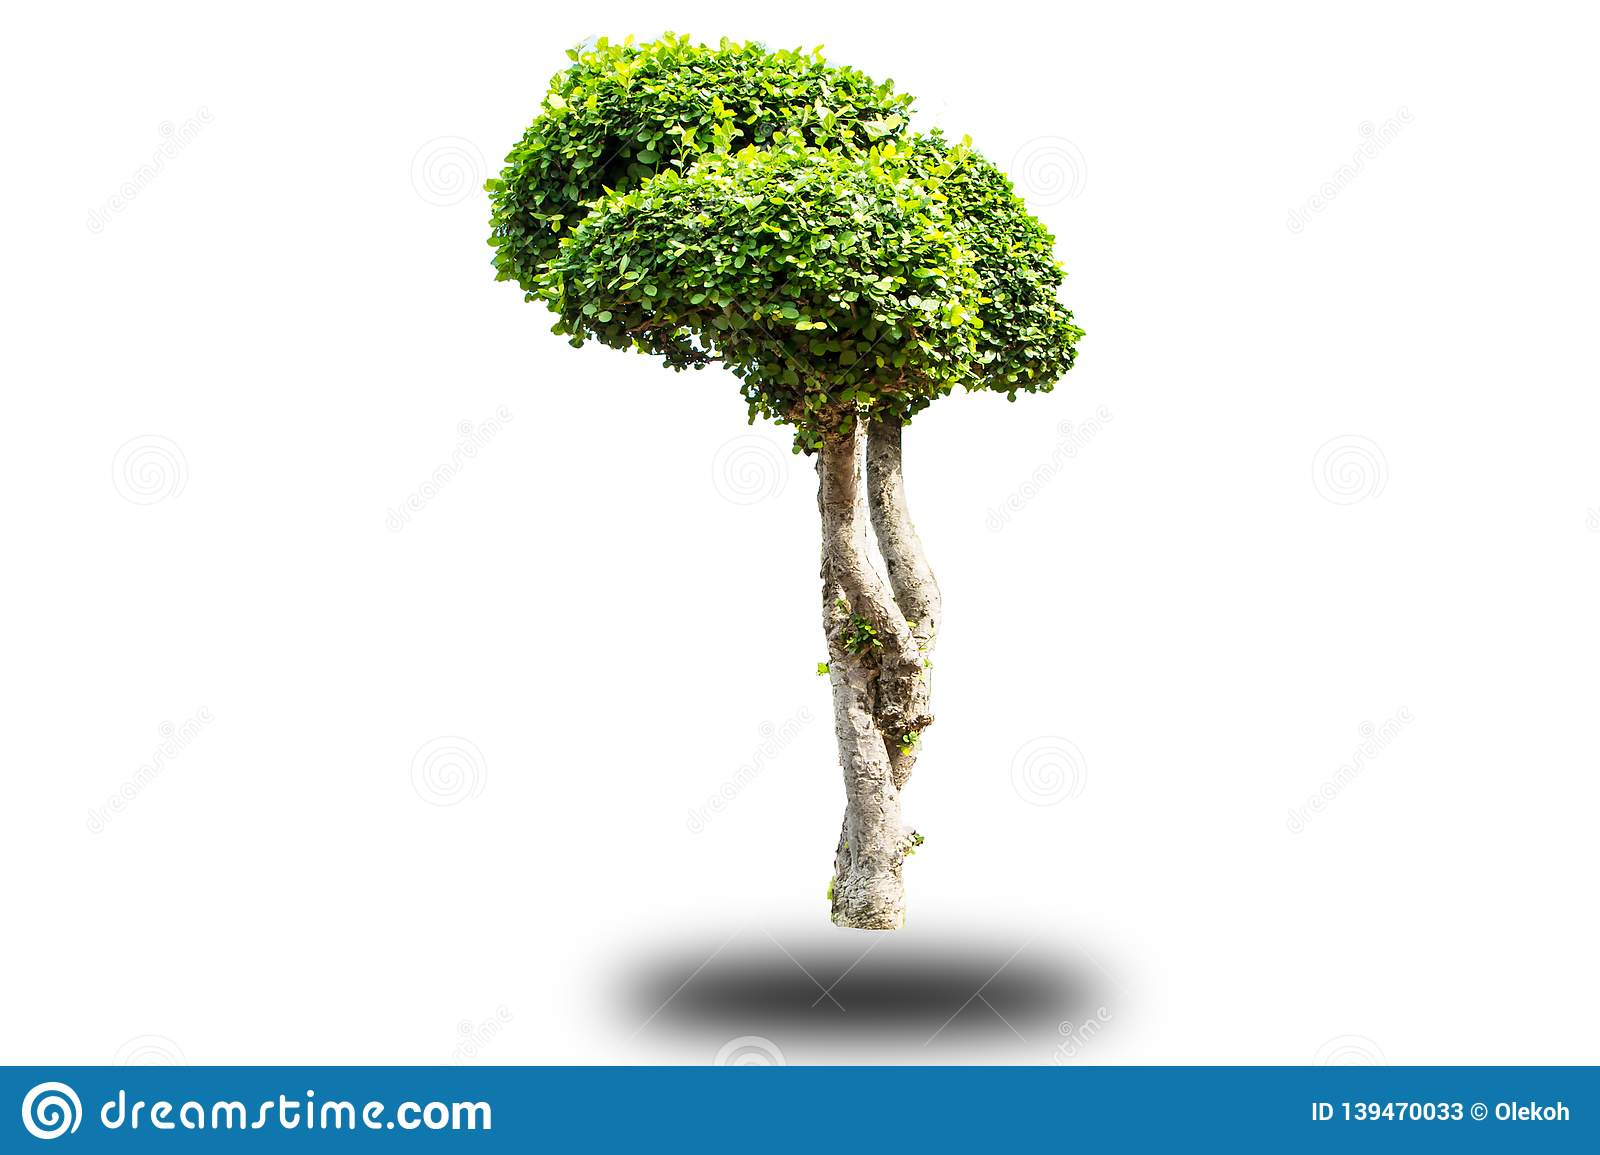 Artistic dwarf of green tree isolated on white background